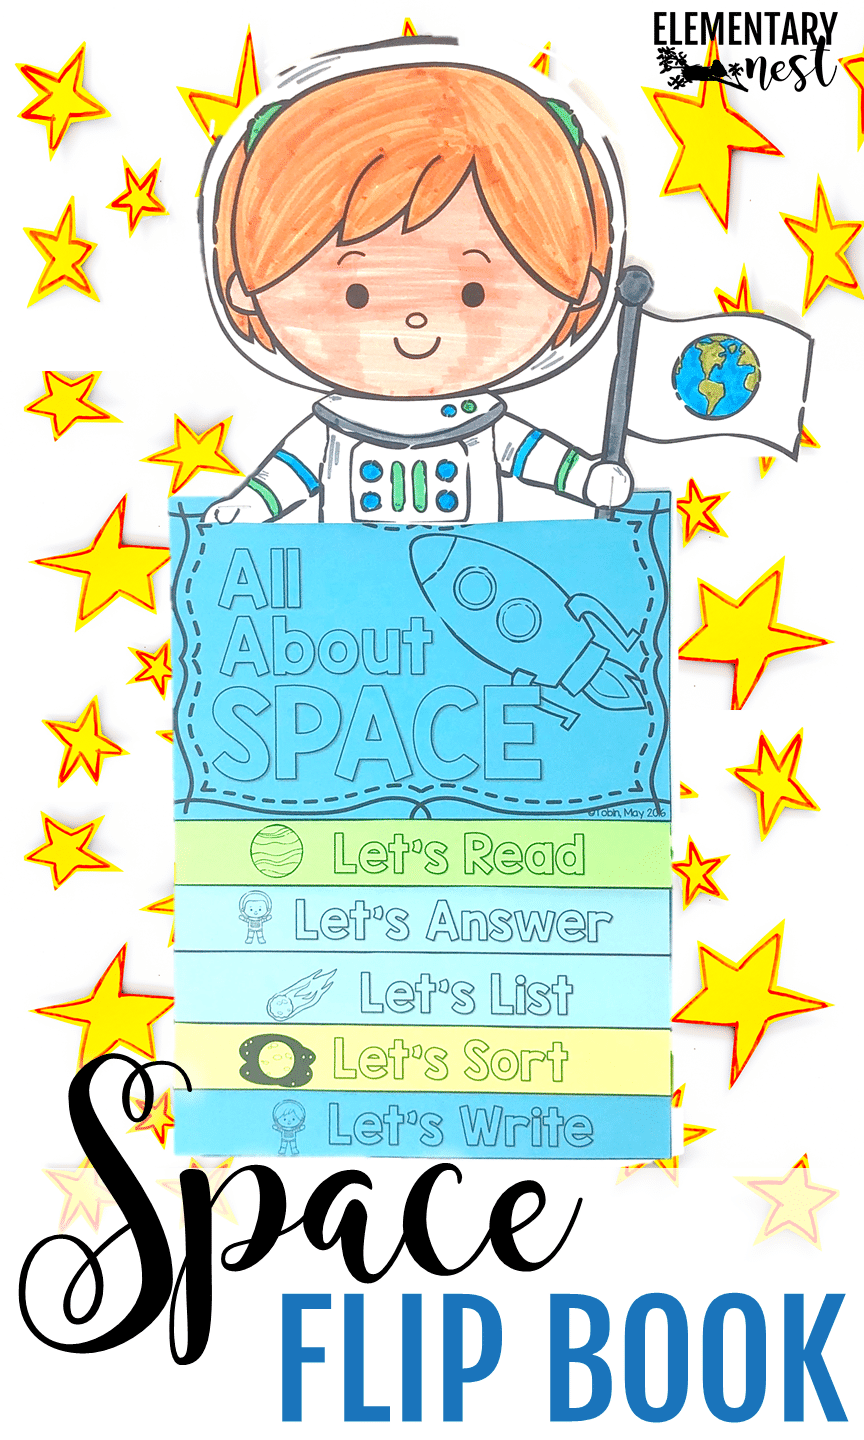 A reading flip book that teachers students about space and solar system while practicing their reading comprehension.